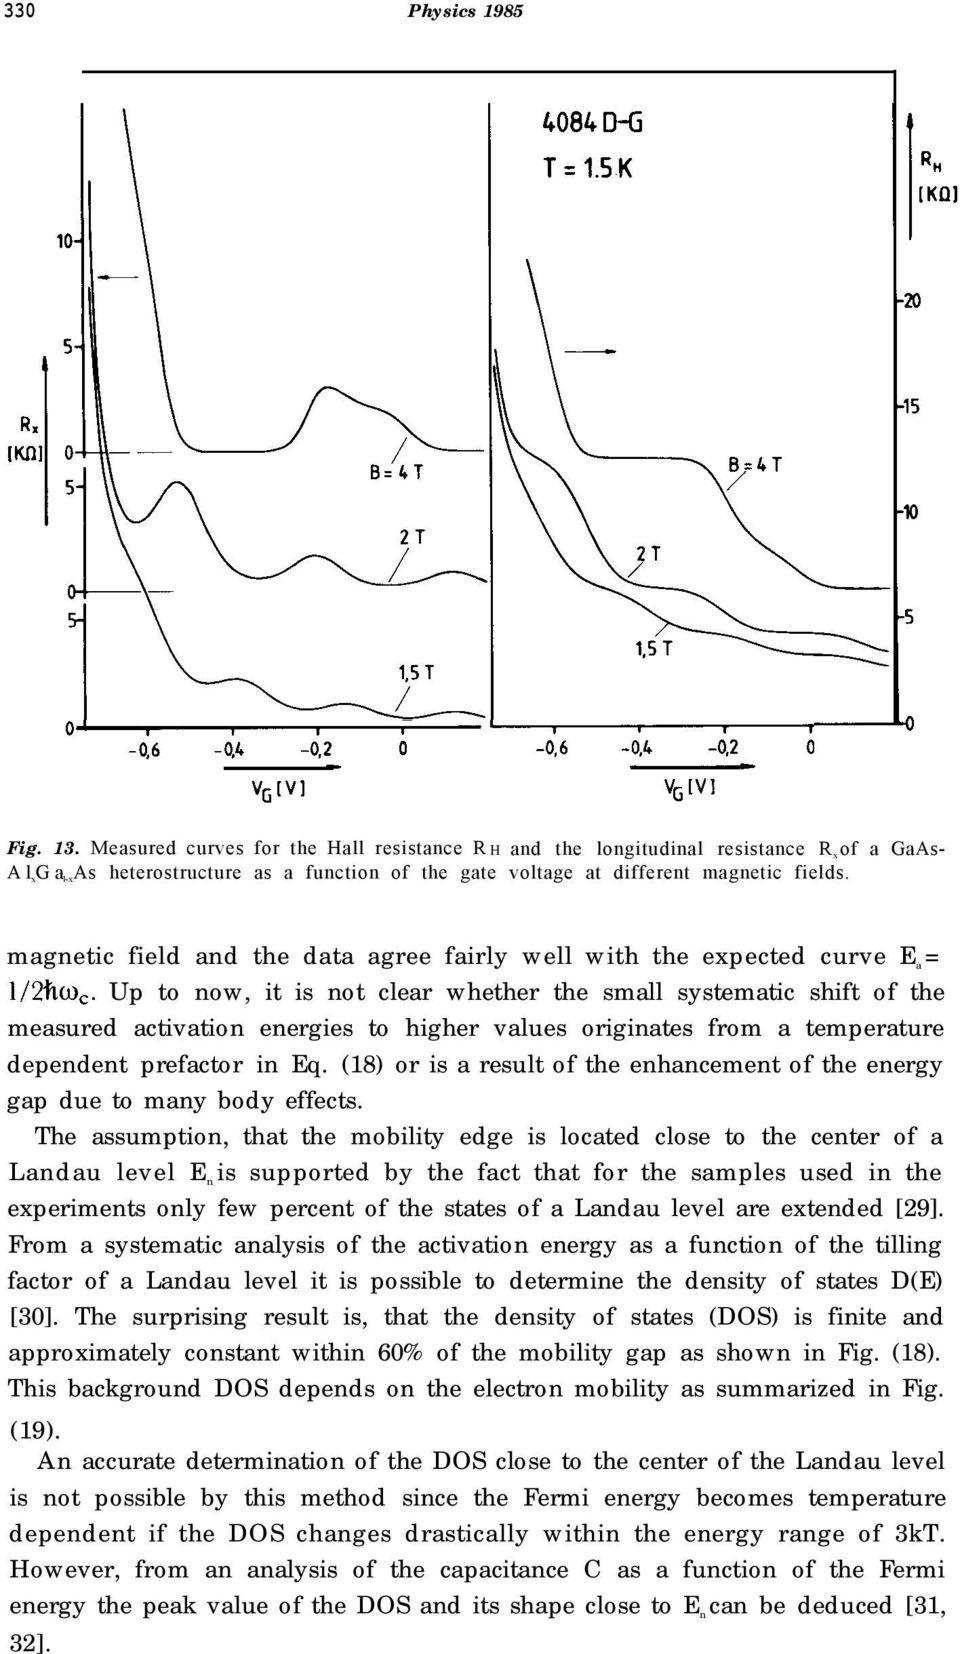 magnetic field and the data agree fairly well with the expected curve E a = 1/2ho,.